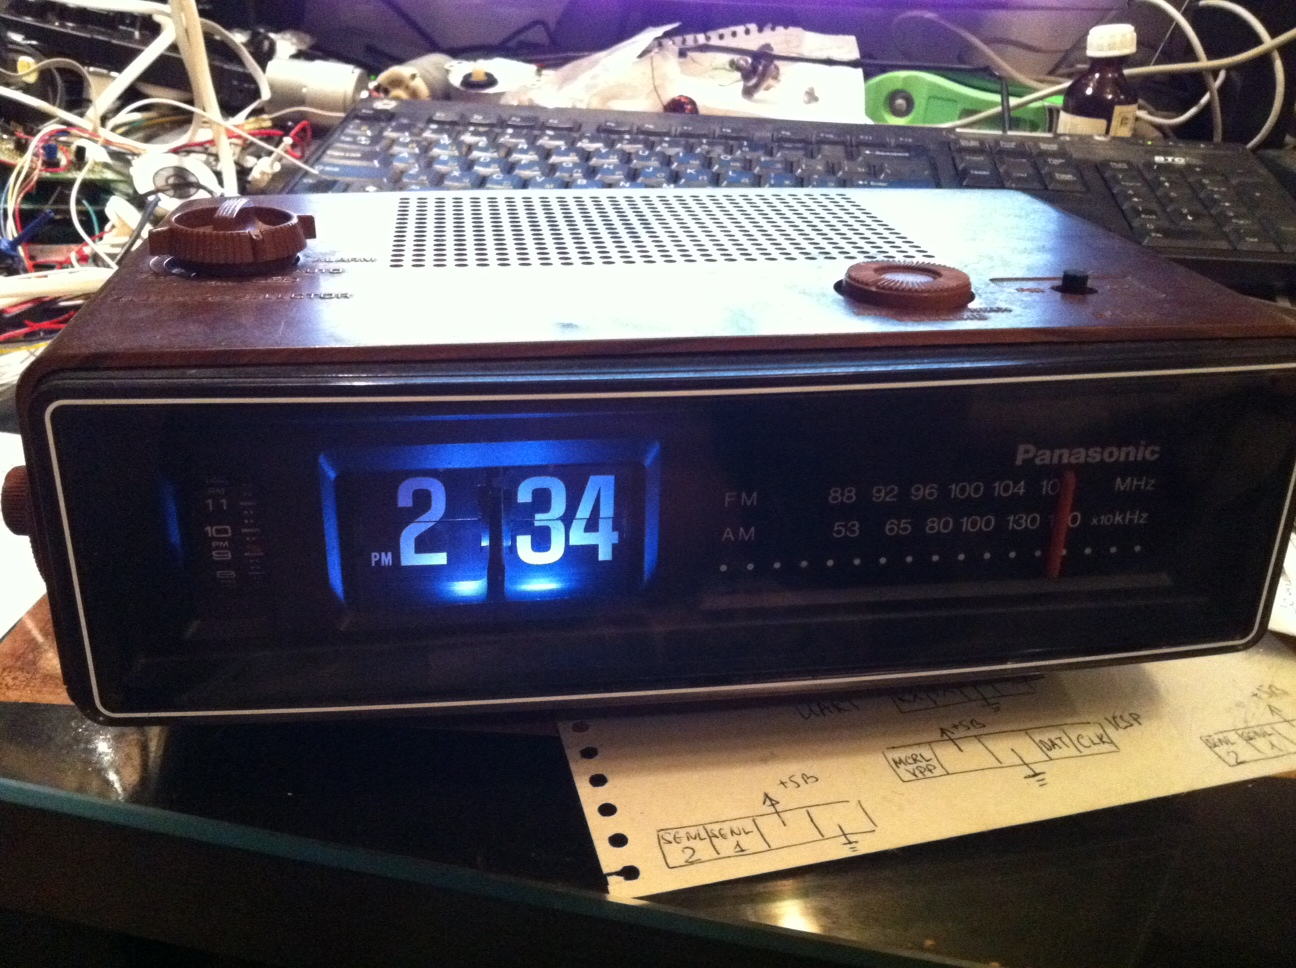 Groundhog day flip clock.JPG